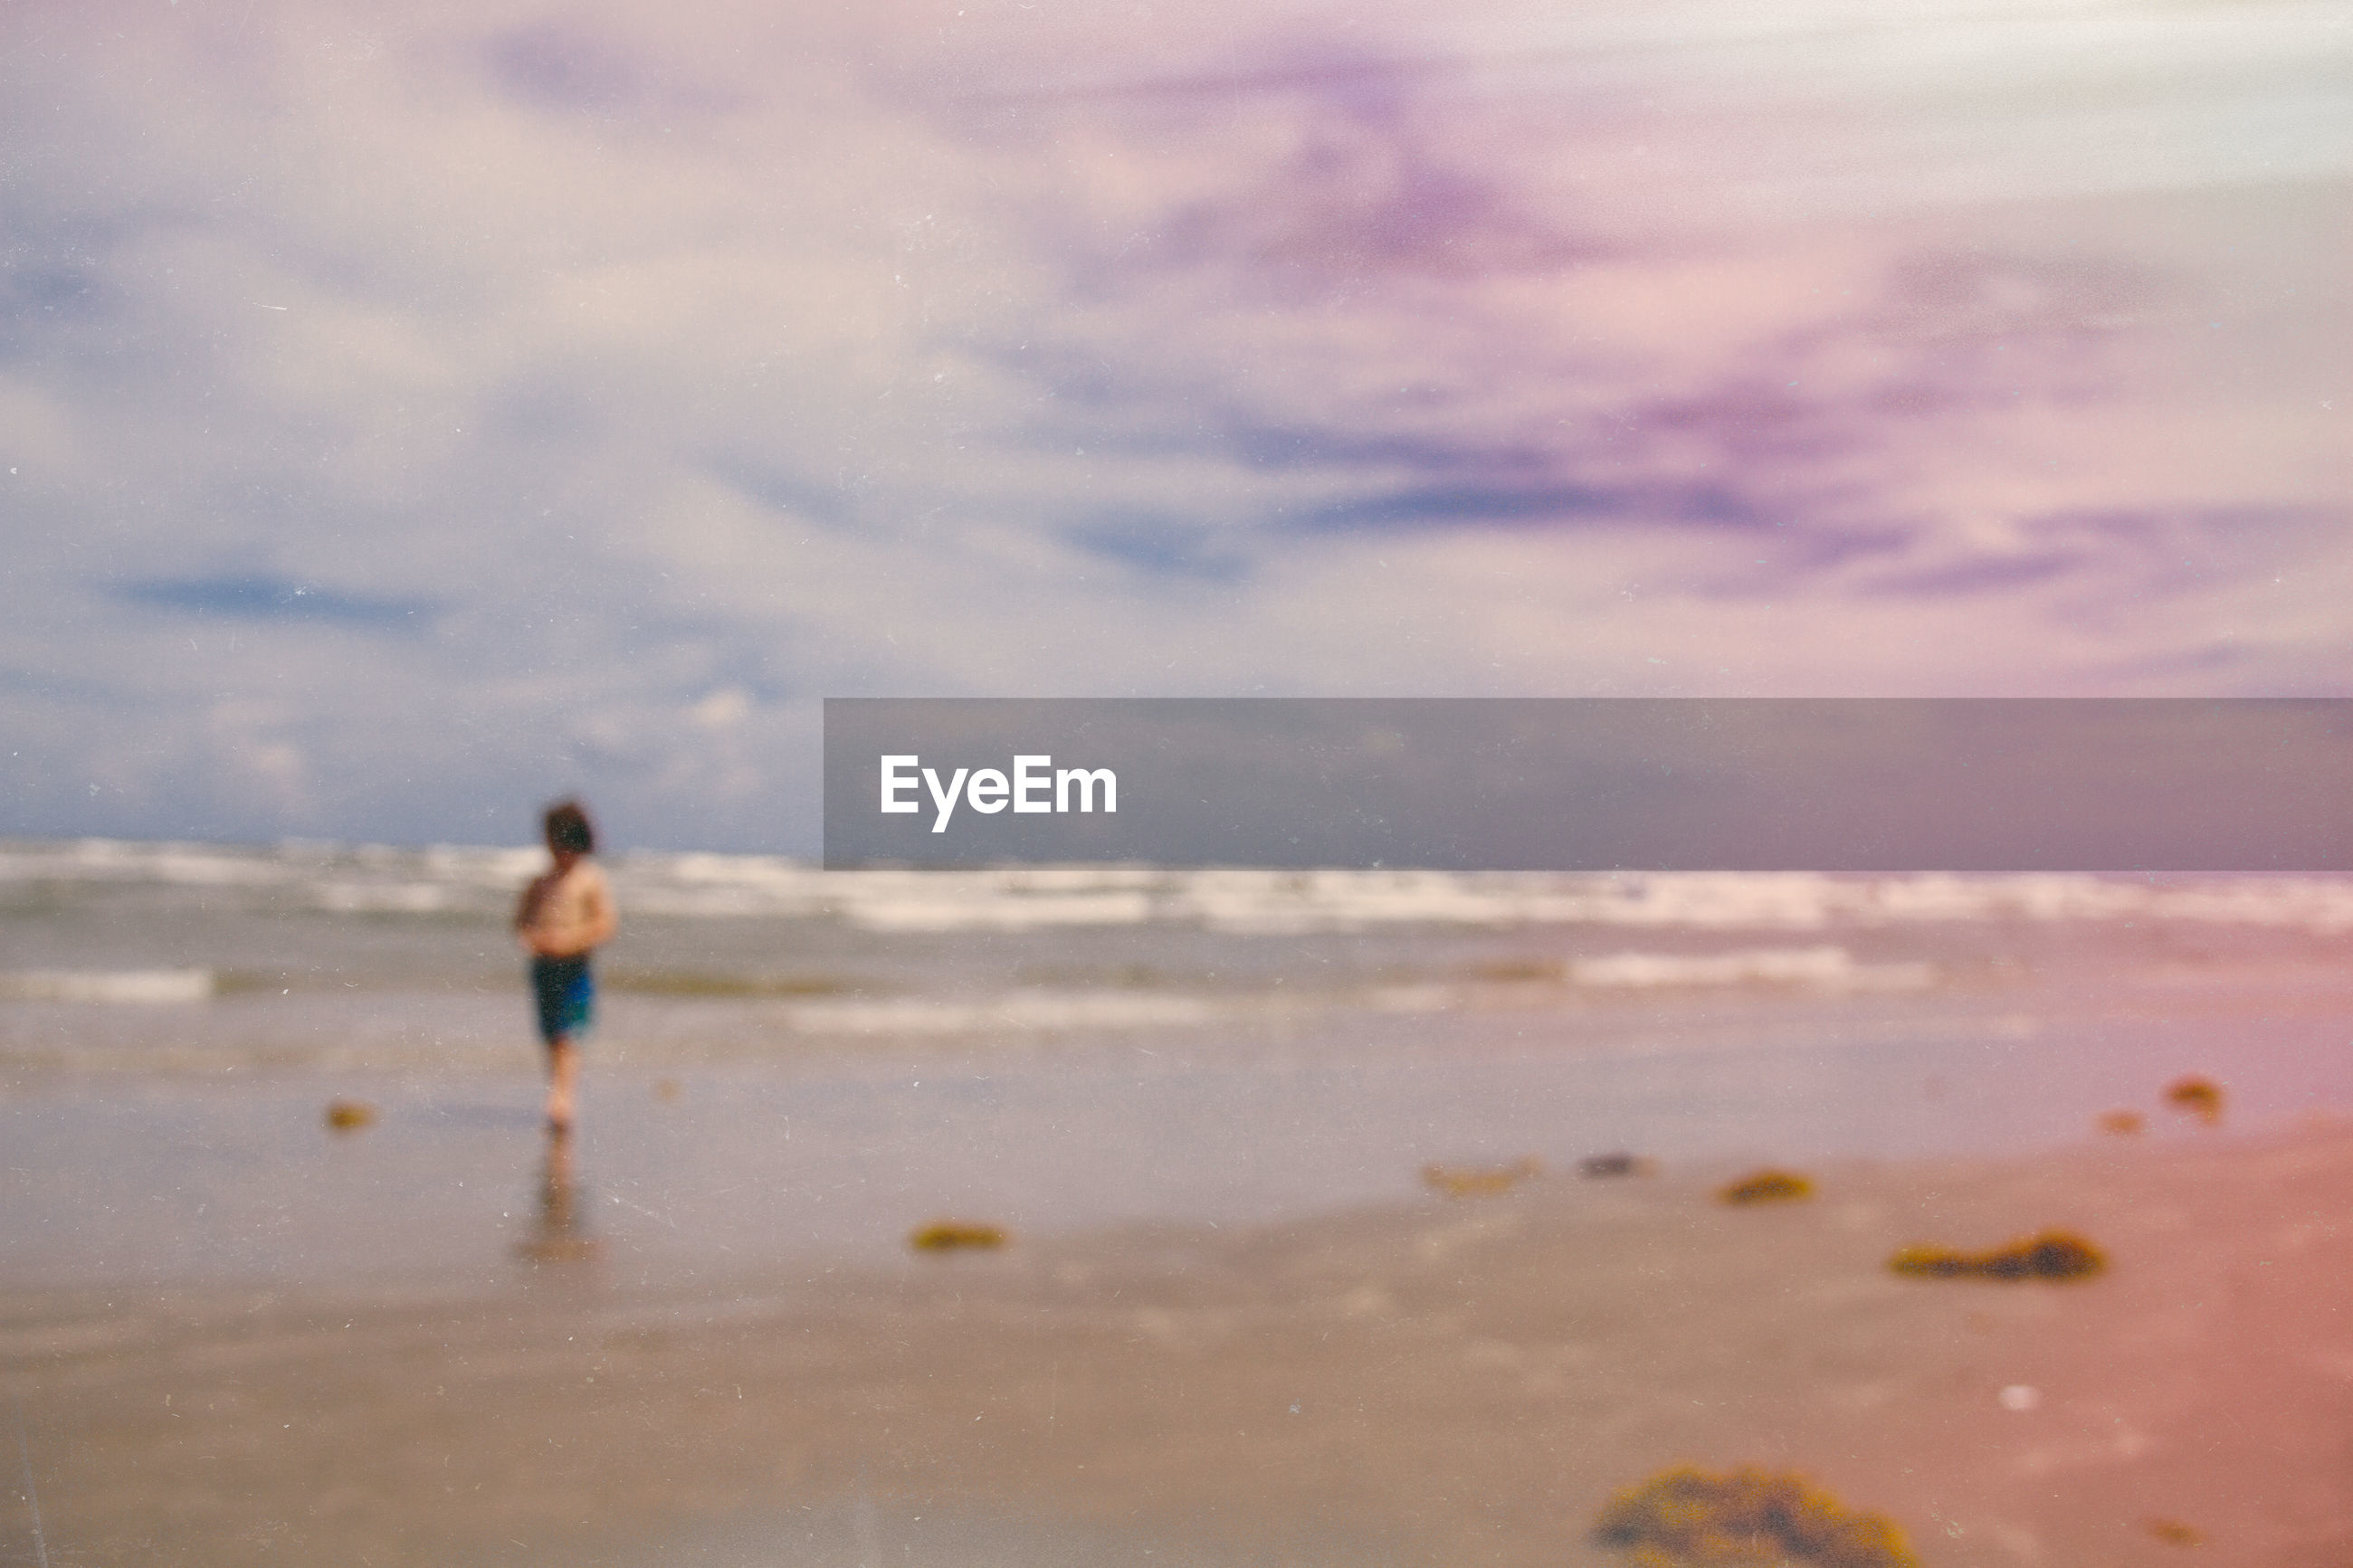 Defocused image of person walking on sea shore at beach during dusk